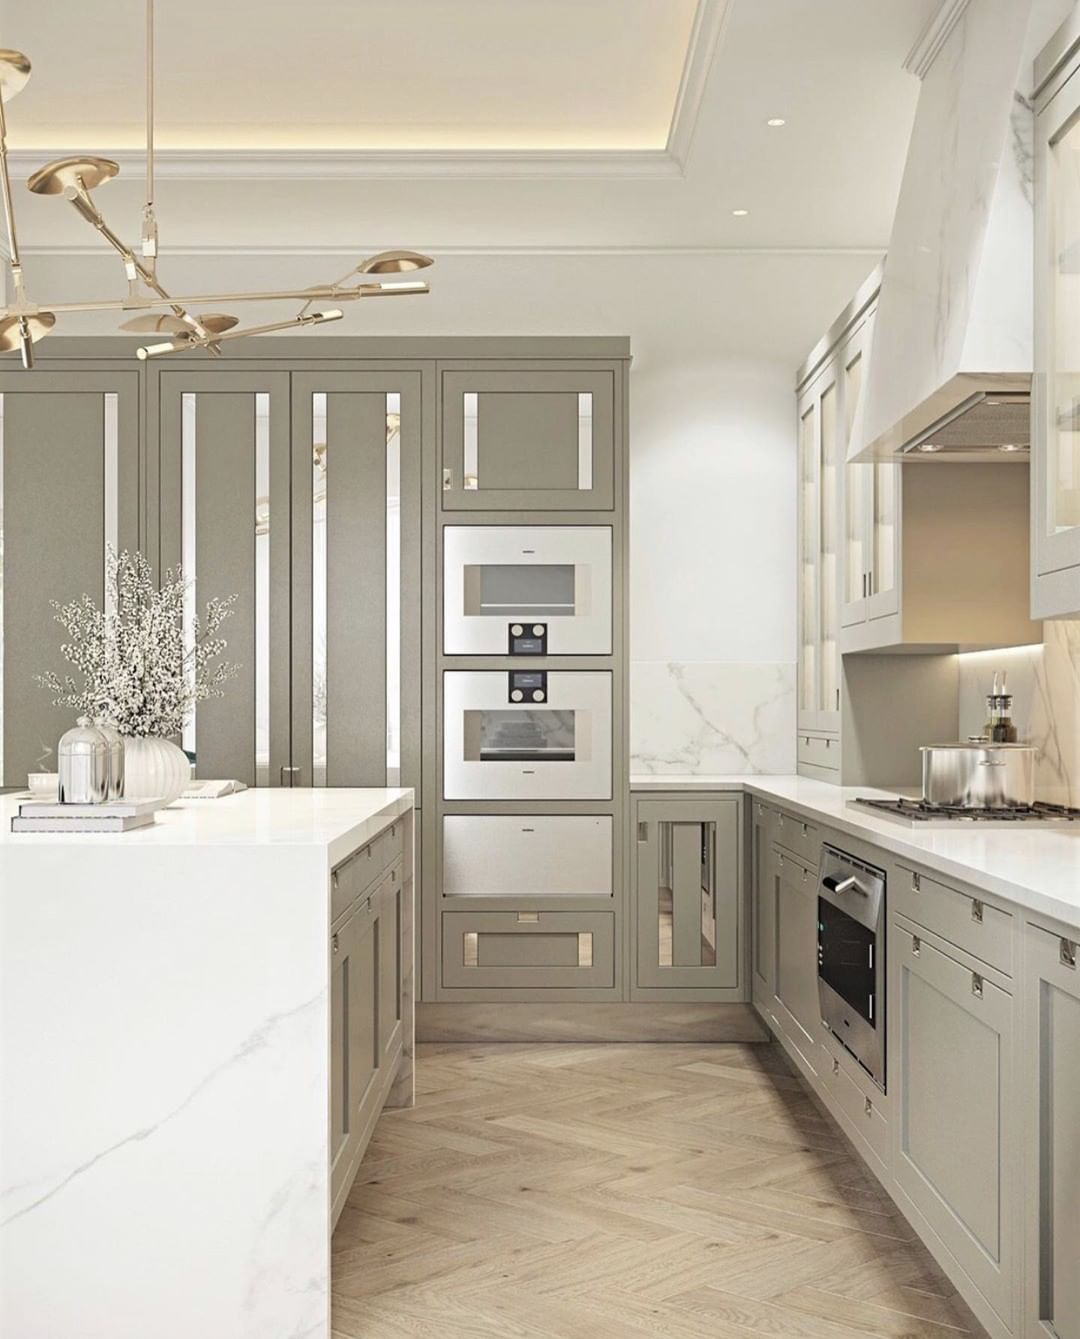 Smallbone Of Devizes On Instagram A Deep Elegance With Strong Finishing Touches This Macassar Collection Kitchen Combines In 2020 Beautiful Kitchens Devizes Kitchen